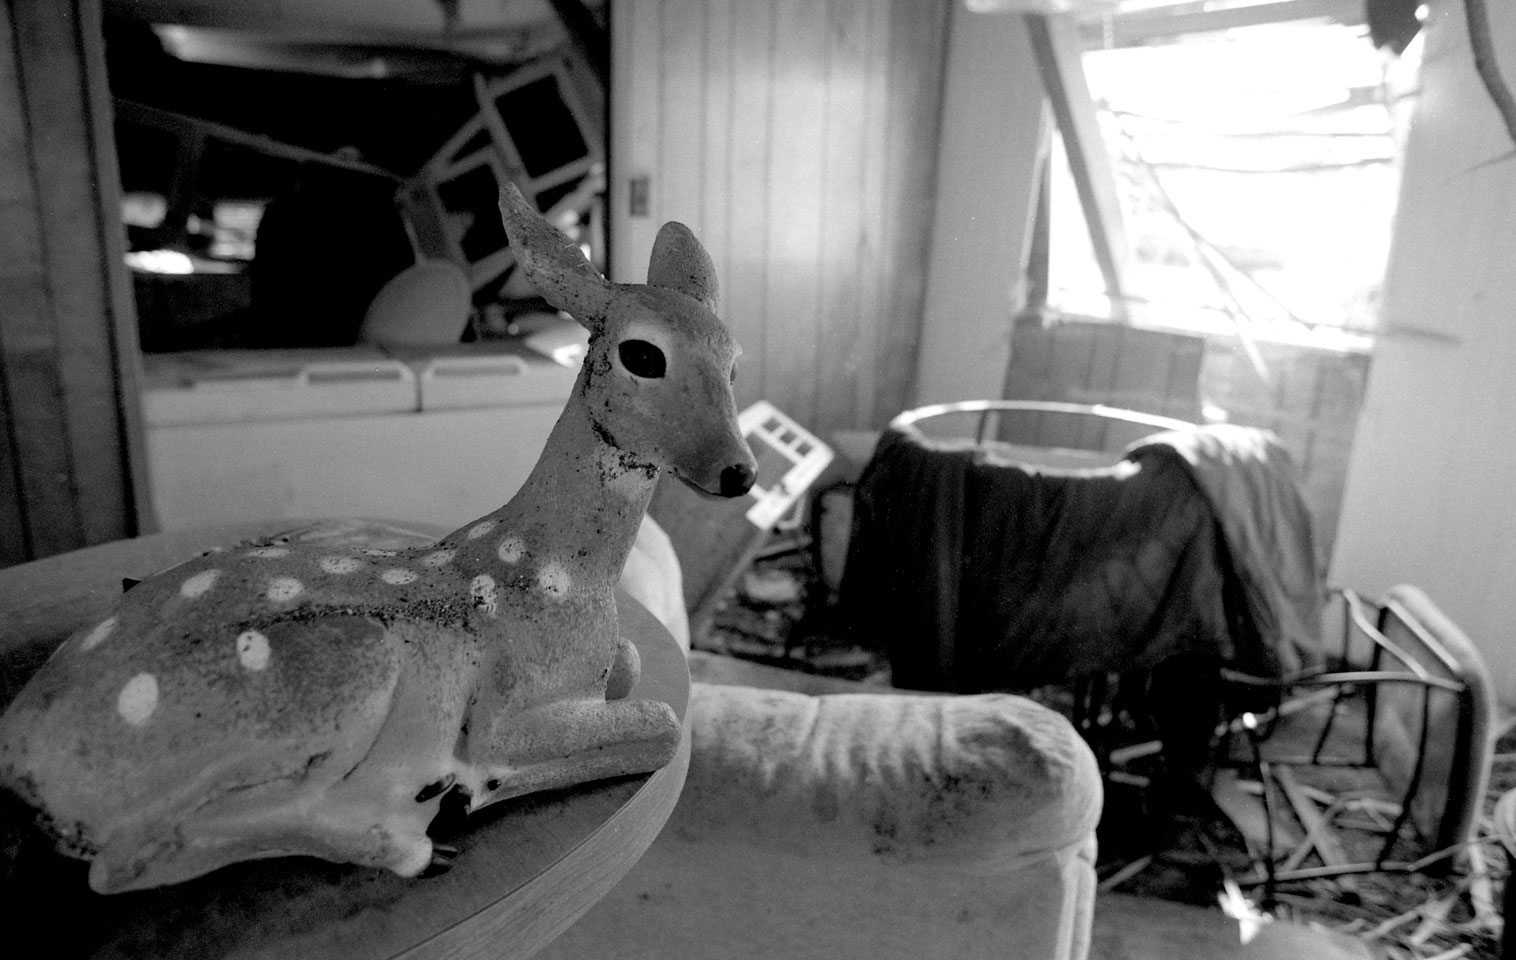 Deer In Trailer Home